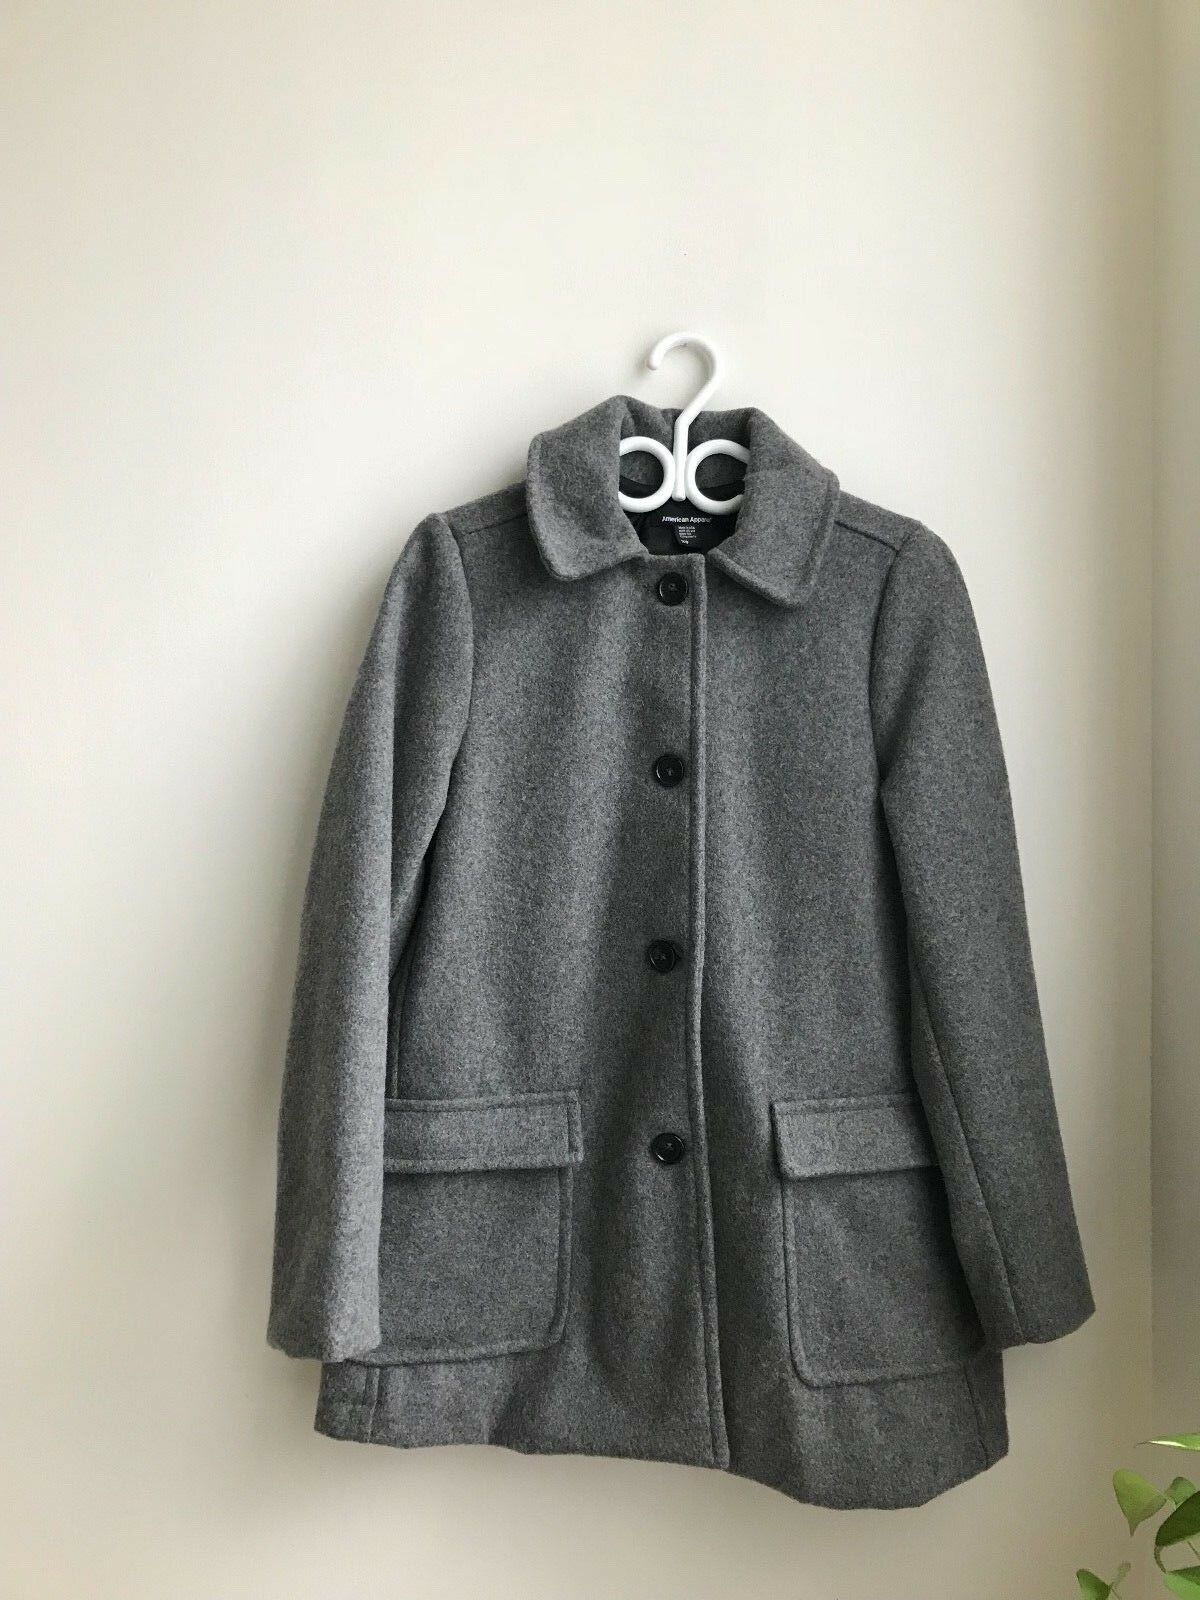 NWOT American Apparel Grey Wool Coat XS (Oversized fit fits larger)